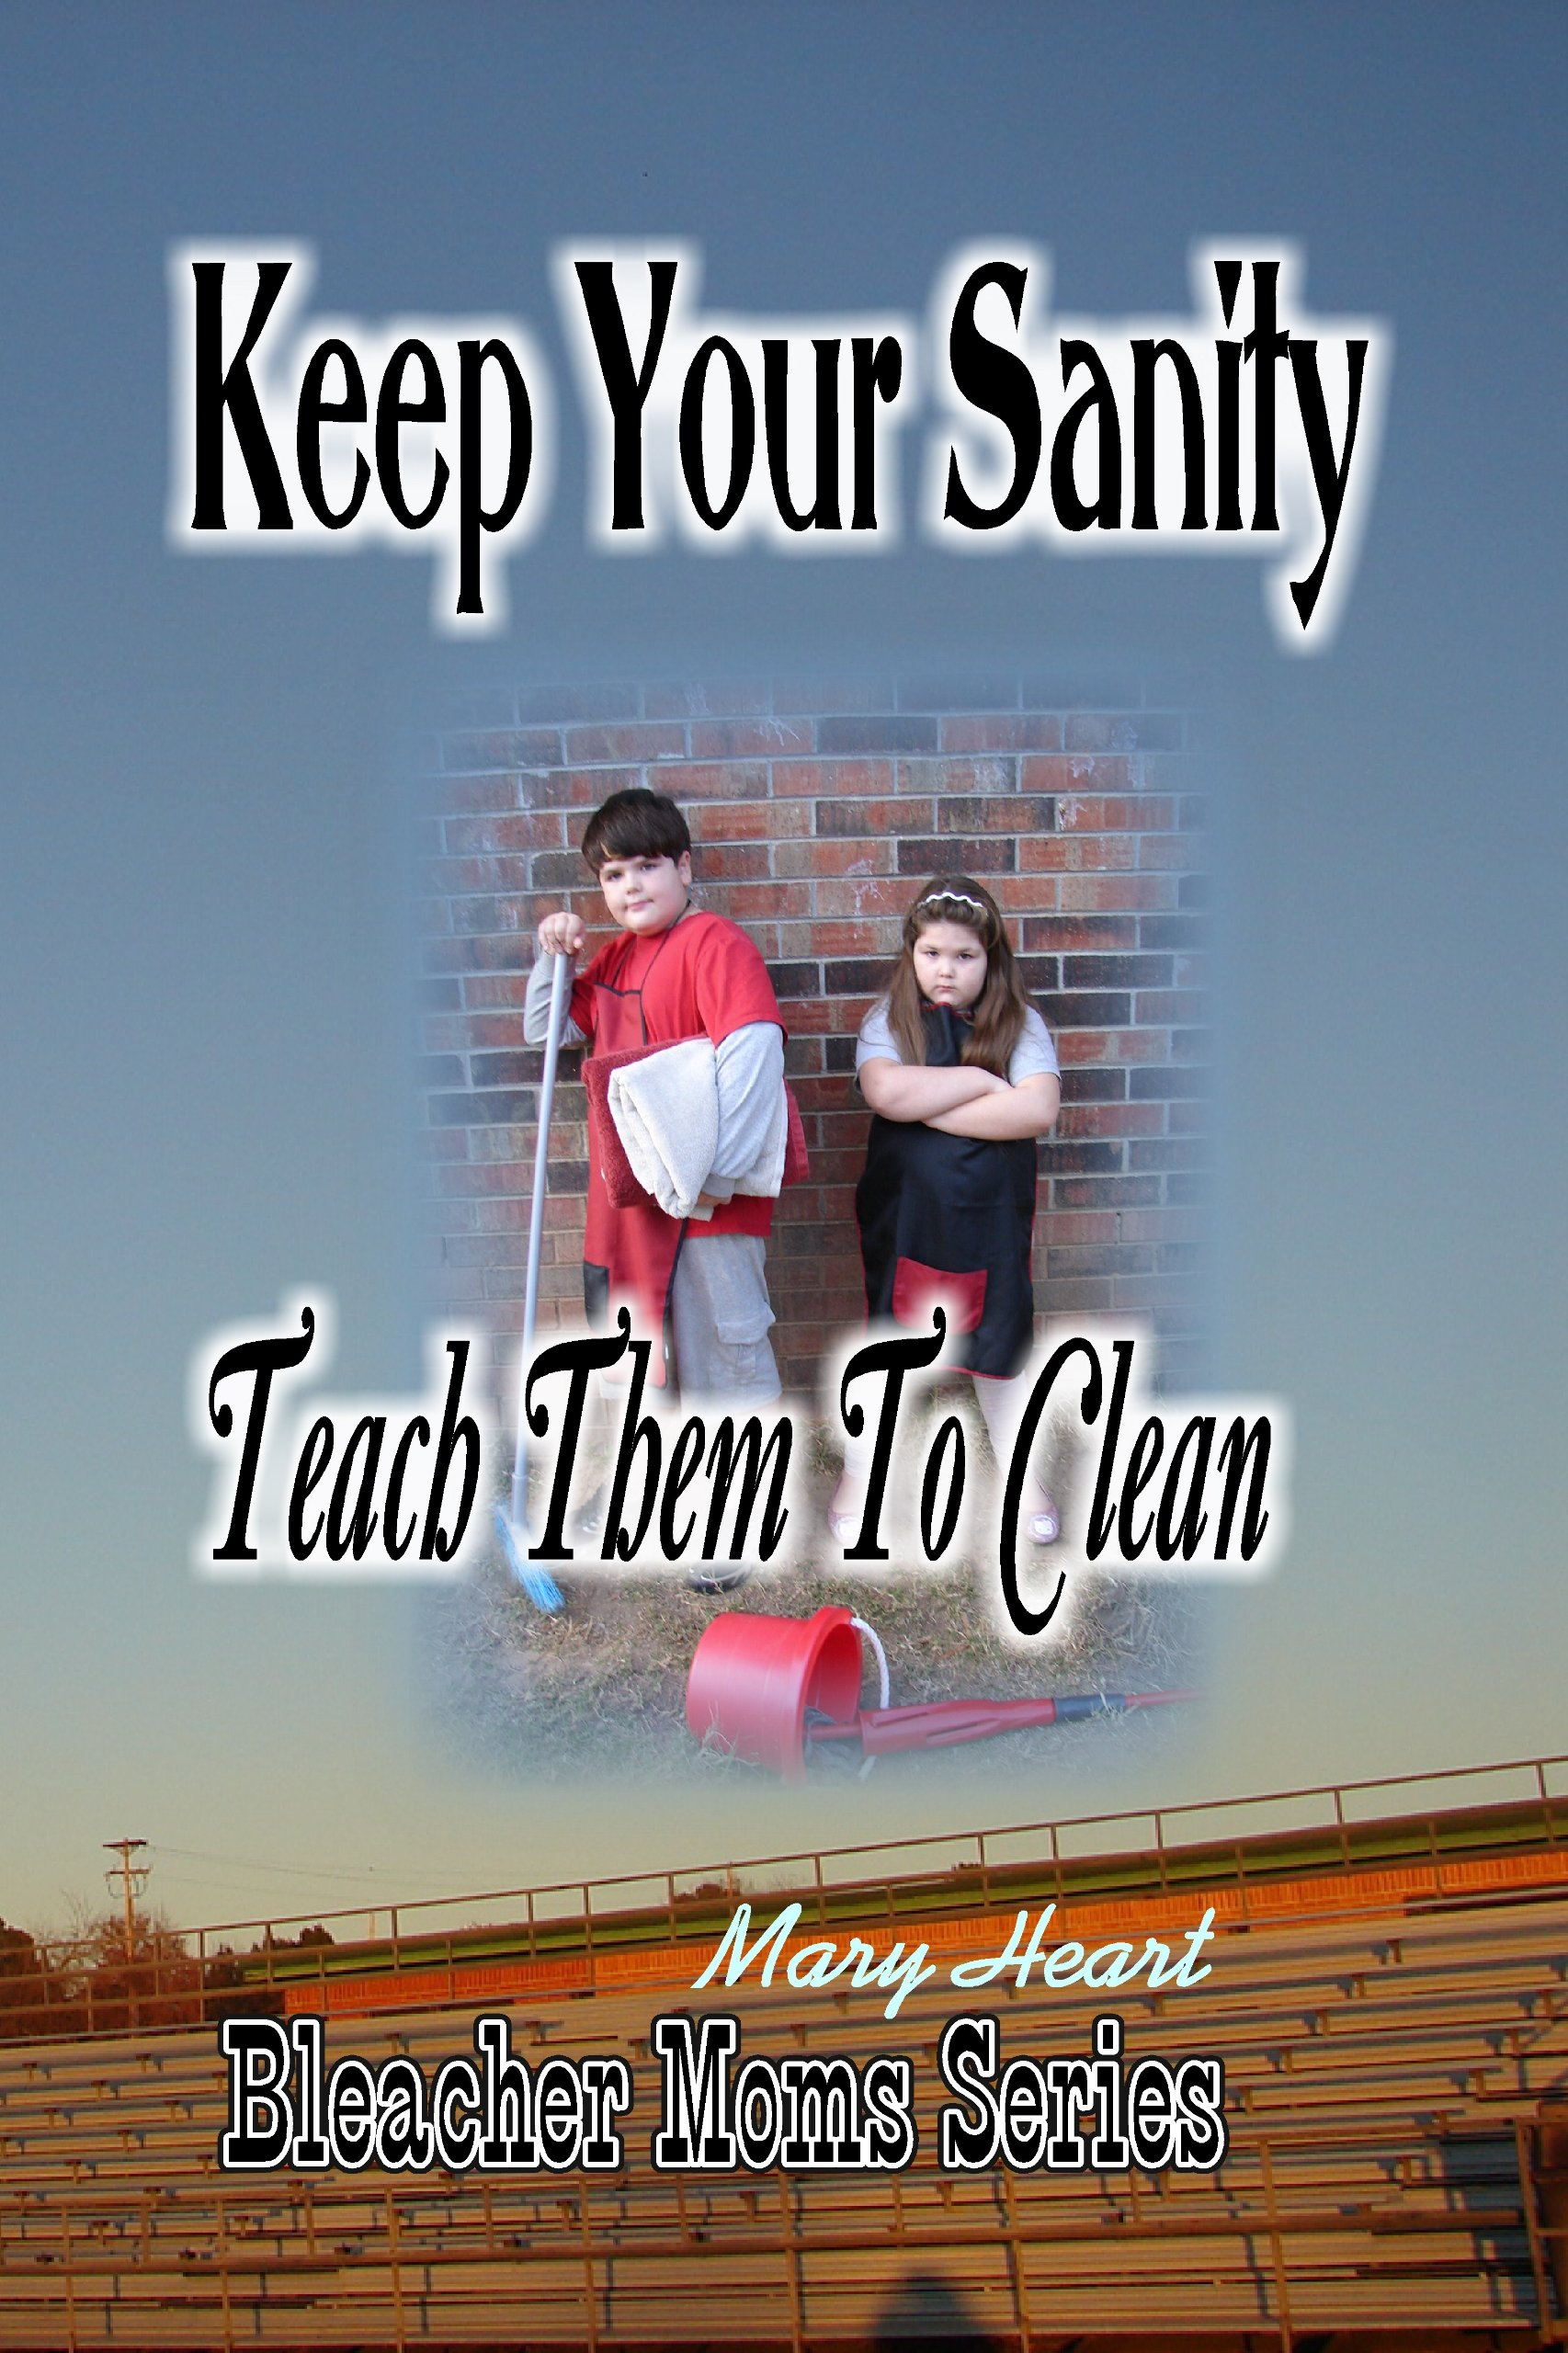 Keep Your Sanity: Teach Them To Clean